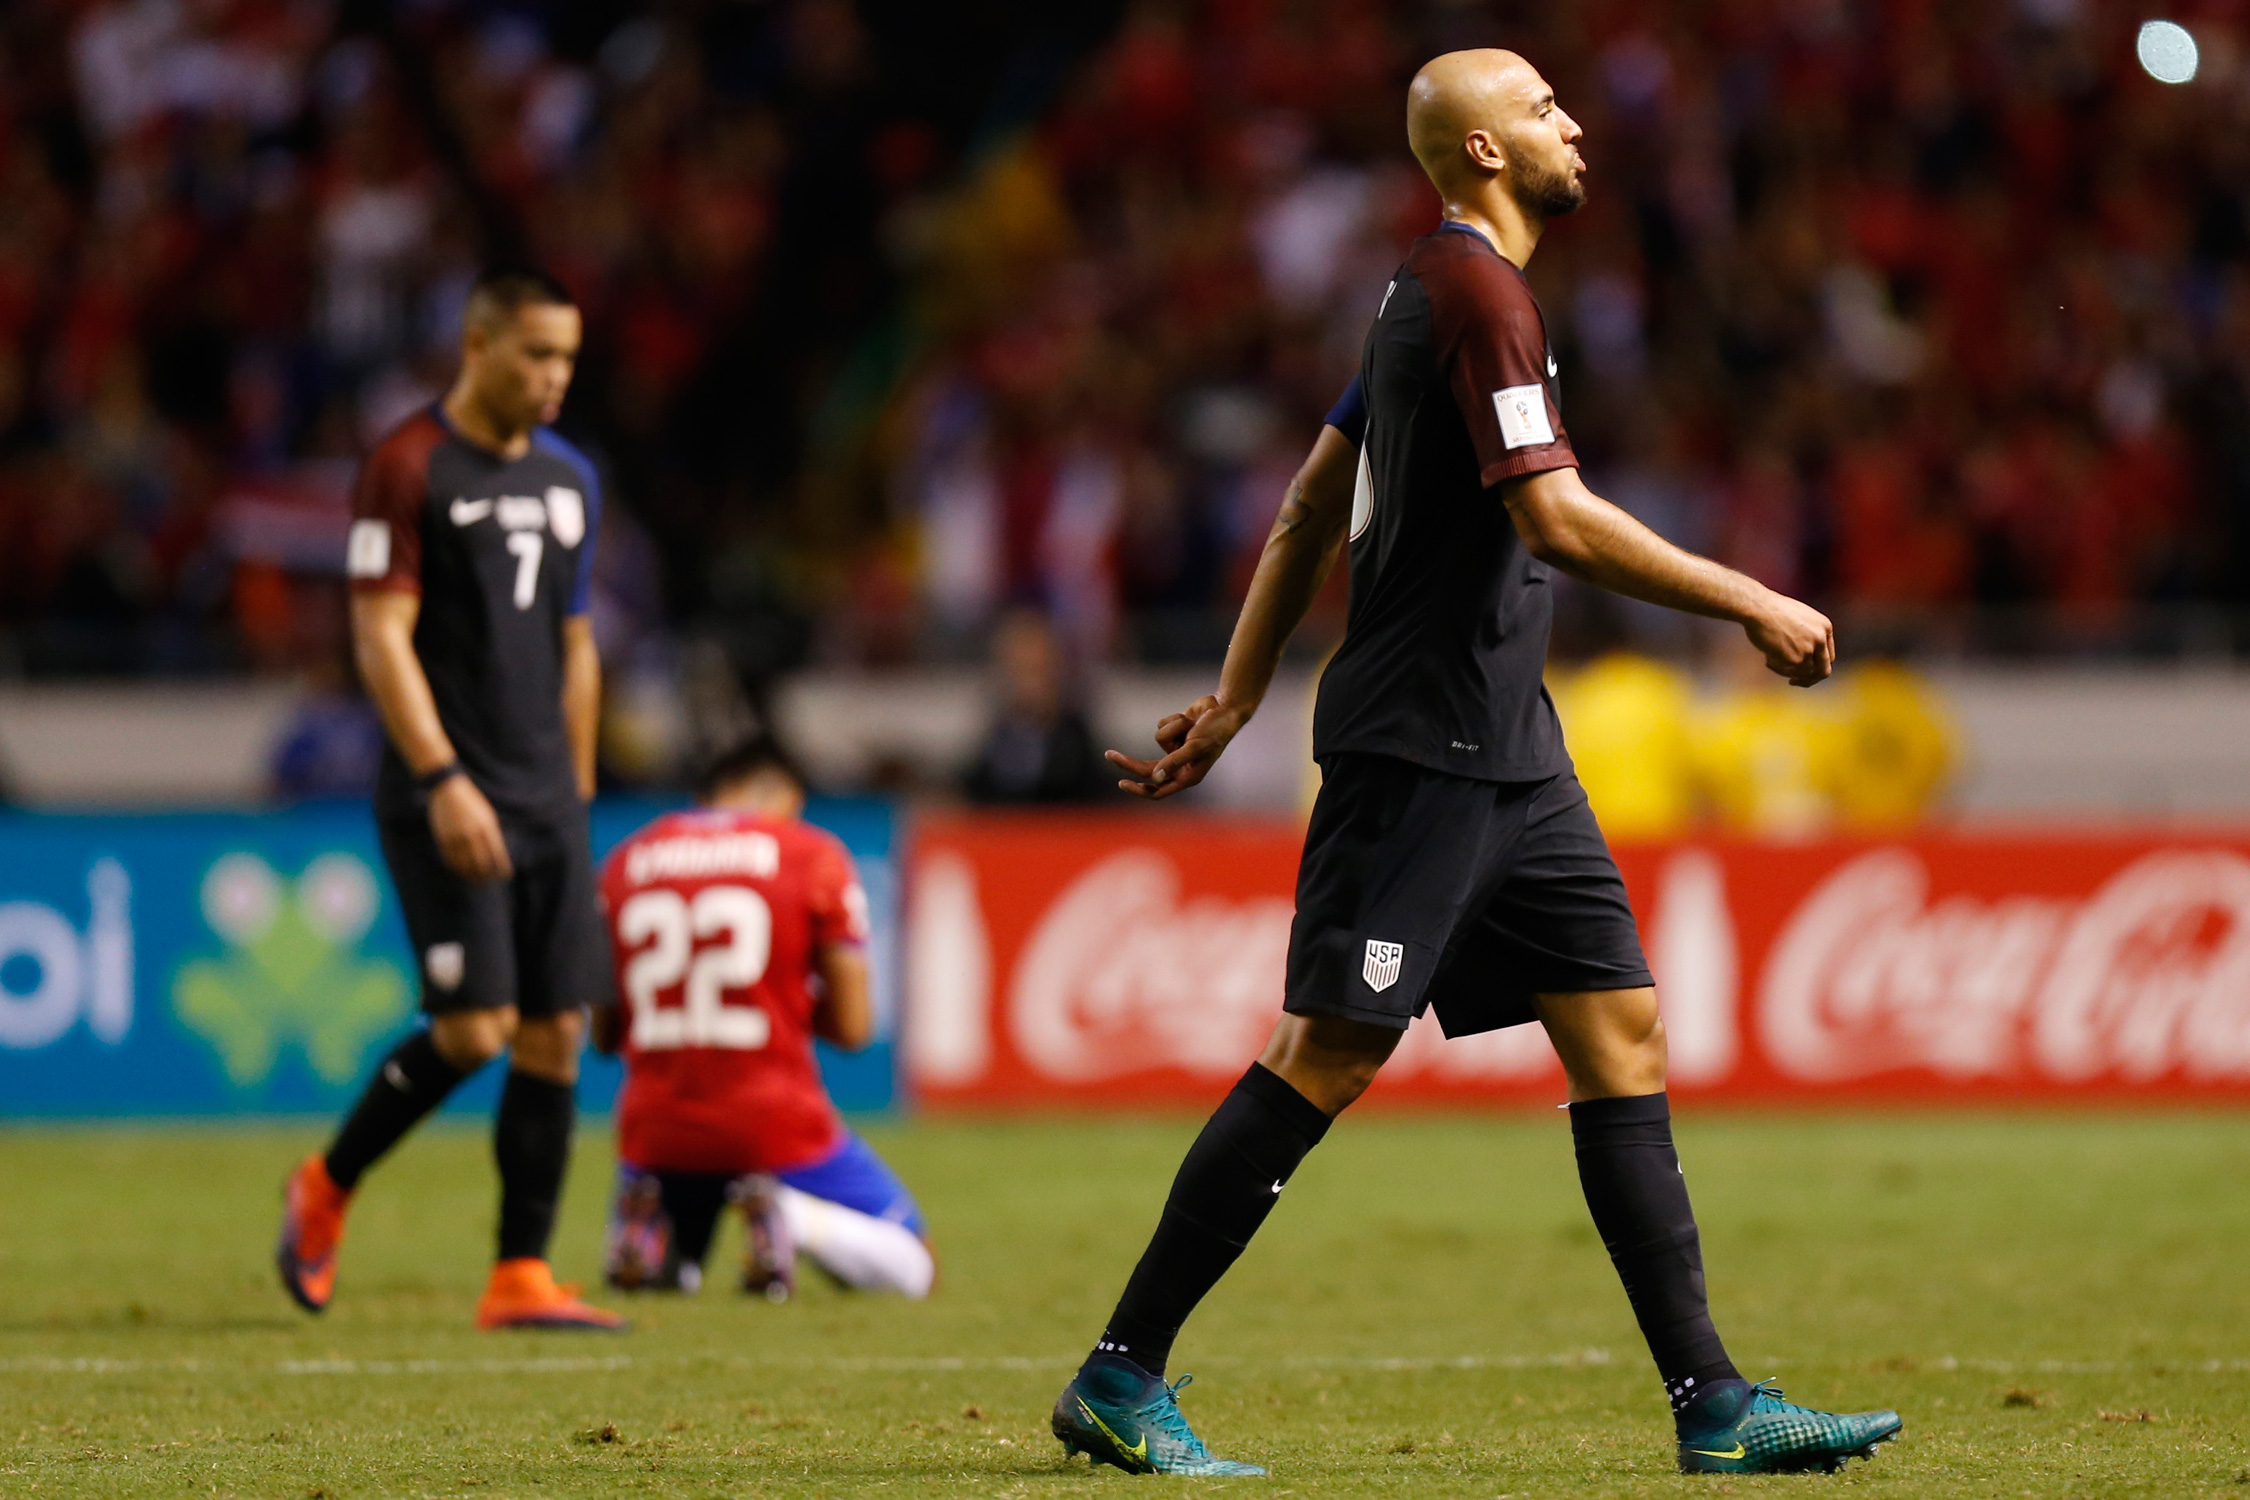 The dejected faces on Bobby Wood, left, and John Brooks say it all, as the U.S. drops to 0-2-0 in the CONCACAF World Cup qualifying Hexagonal following a 4-0 loss and embarrassment at Costa Rica.